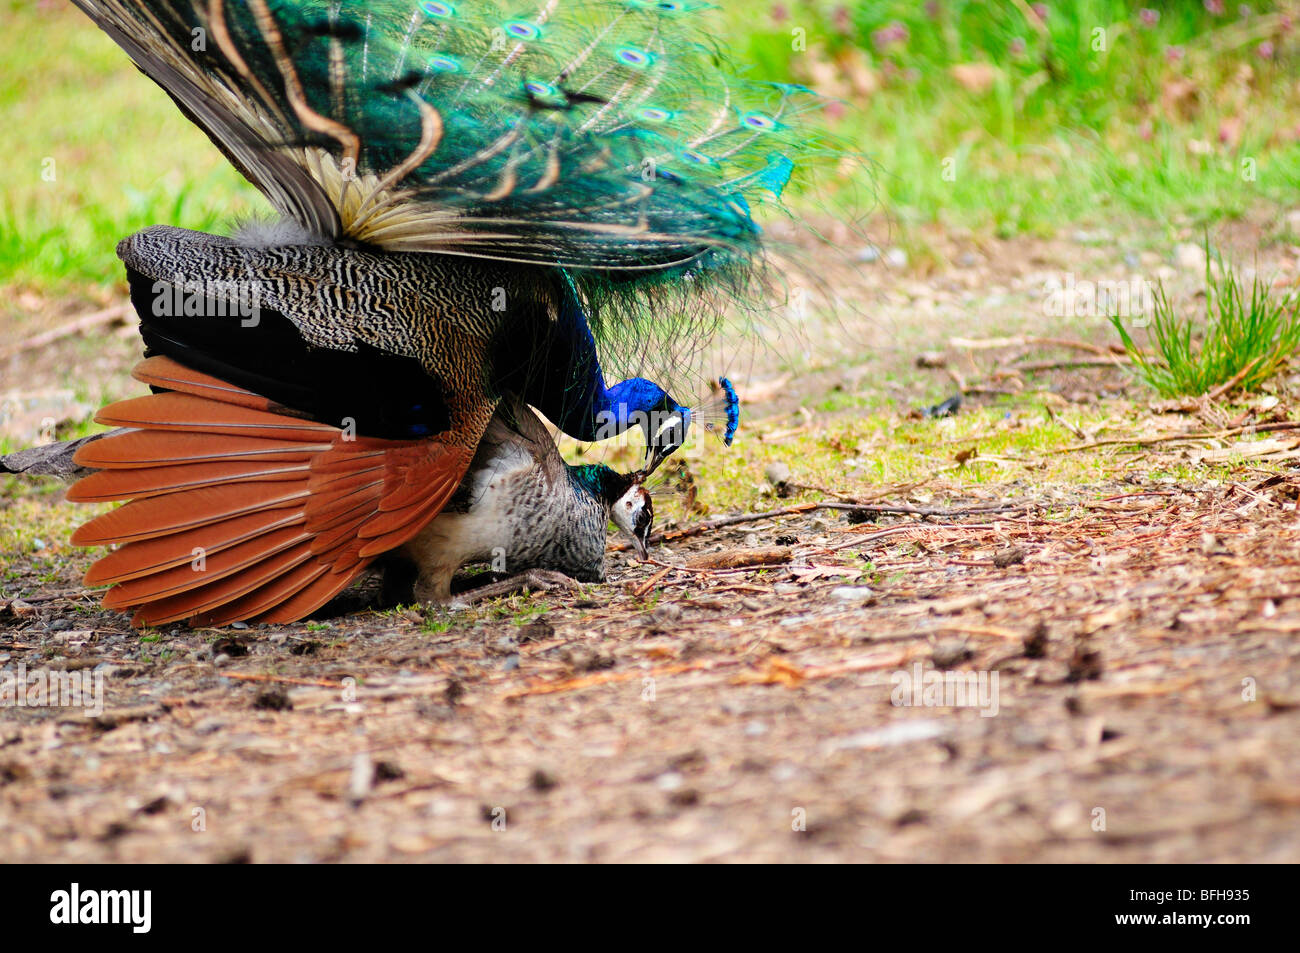 Male peacock mating with female peacock. Stock Photo